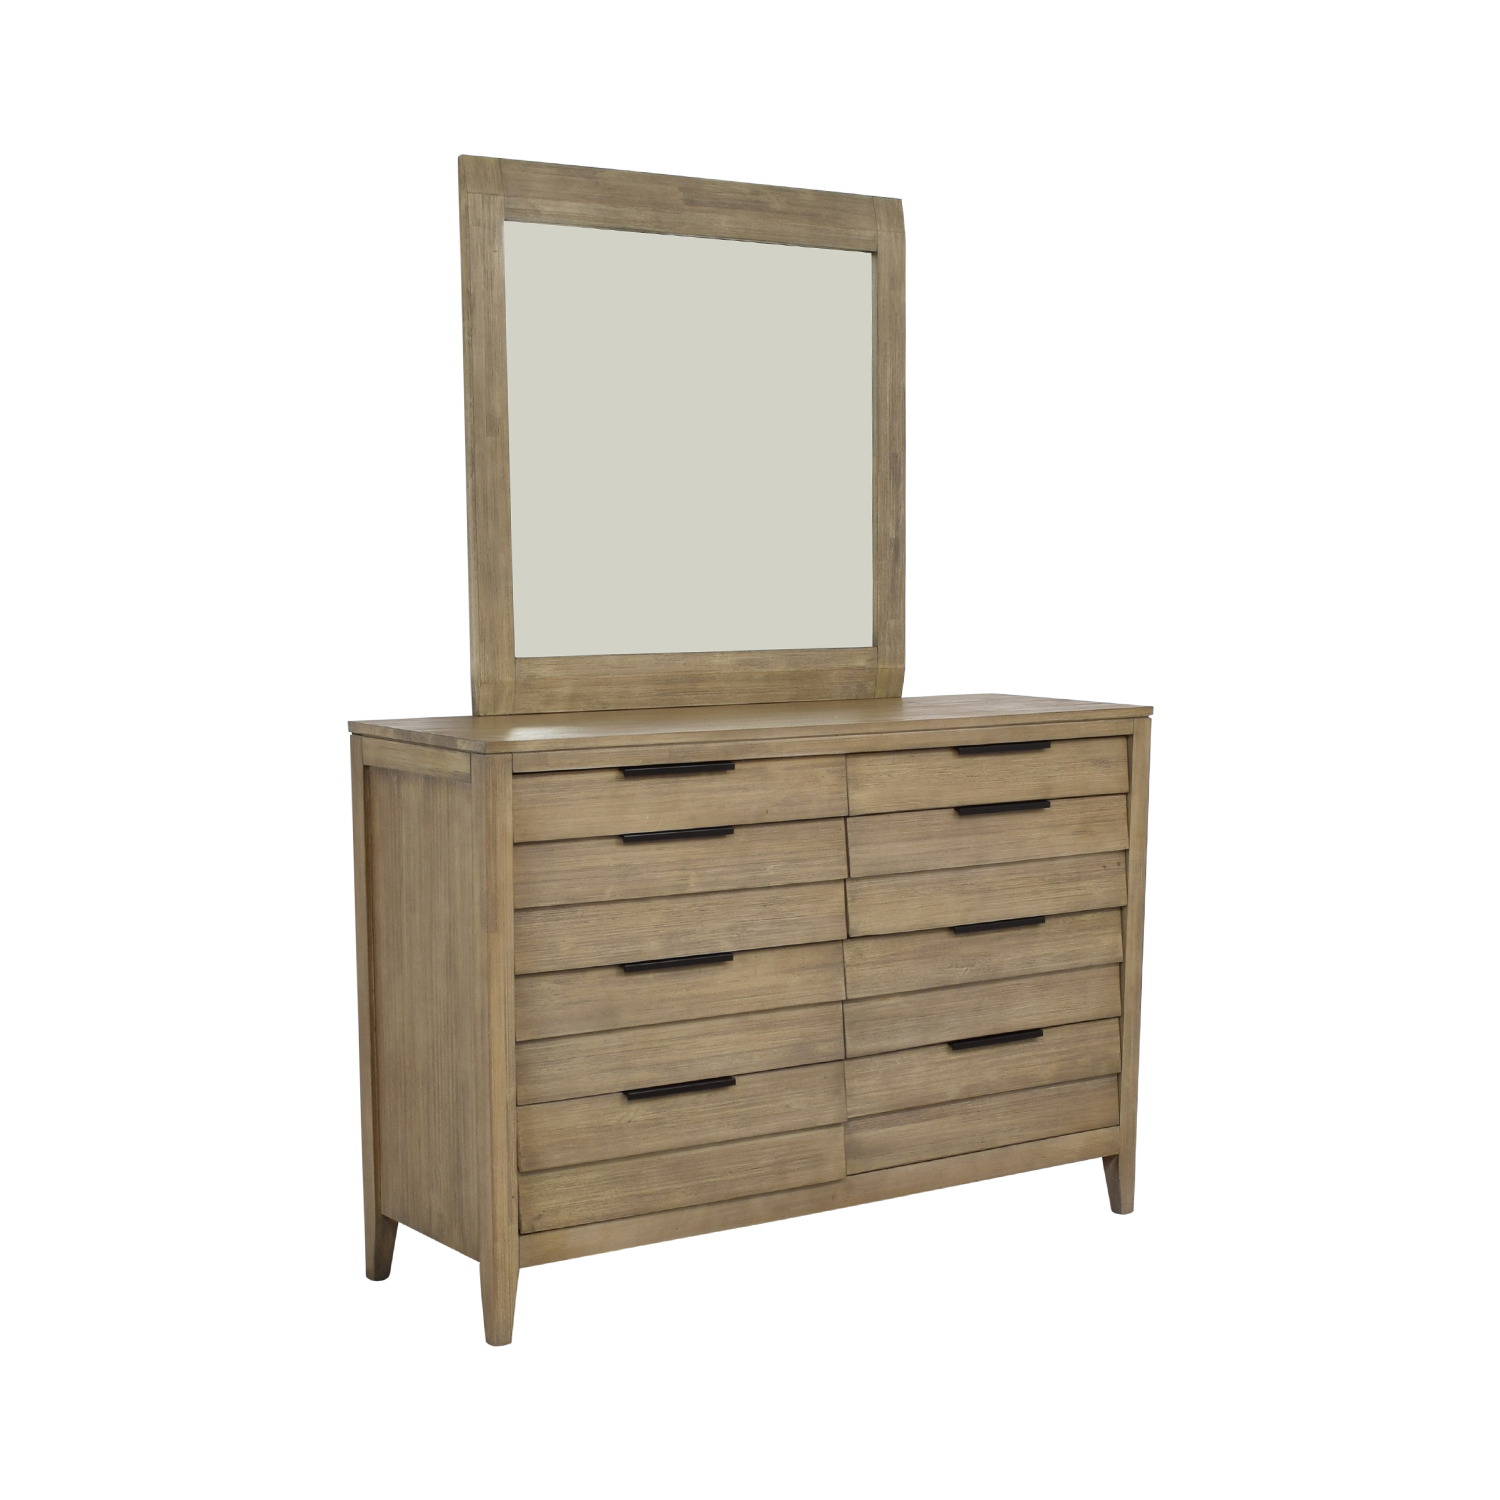 Macy's Macy's Mirrored Dresser second hand